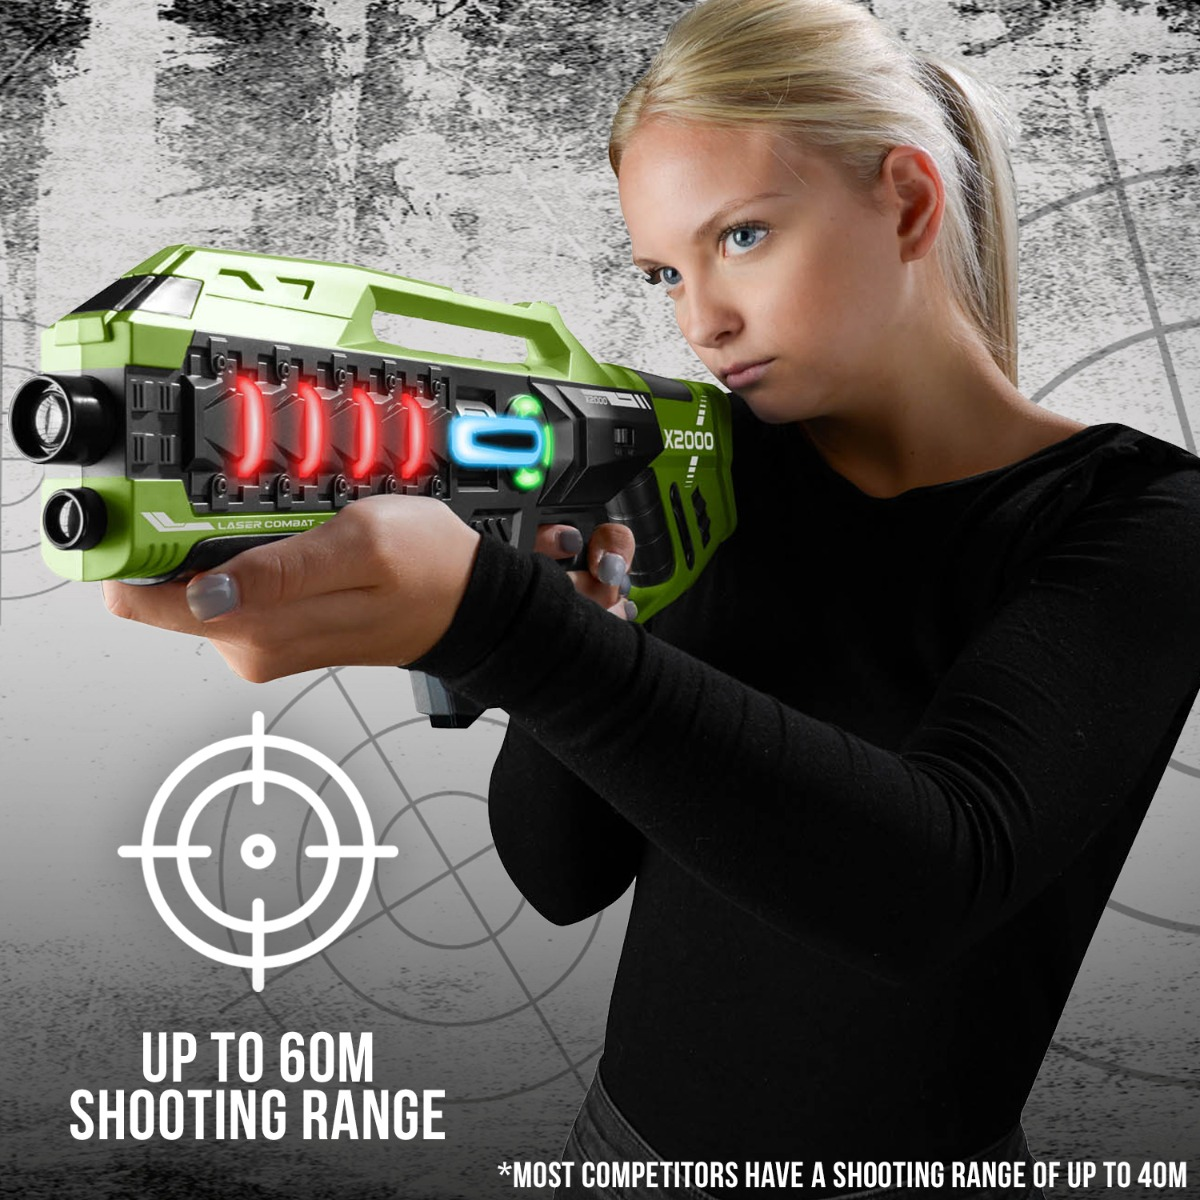 Laser-Tag-Game-Kids-Electronic-2-Blaster-Gun-Battle-Set-60m-Shooting-Range thumbnail 9